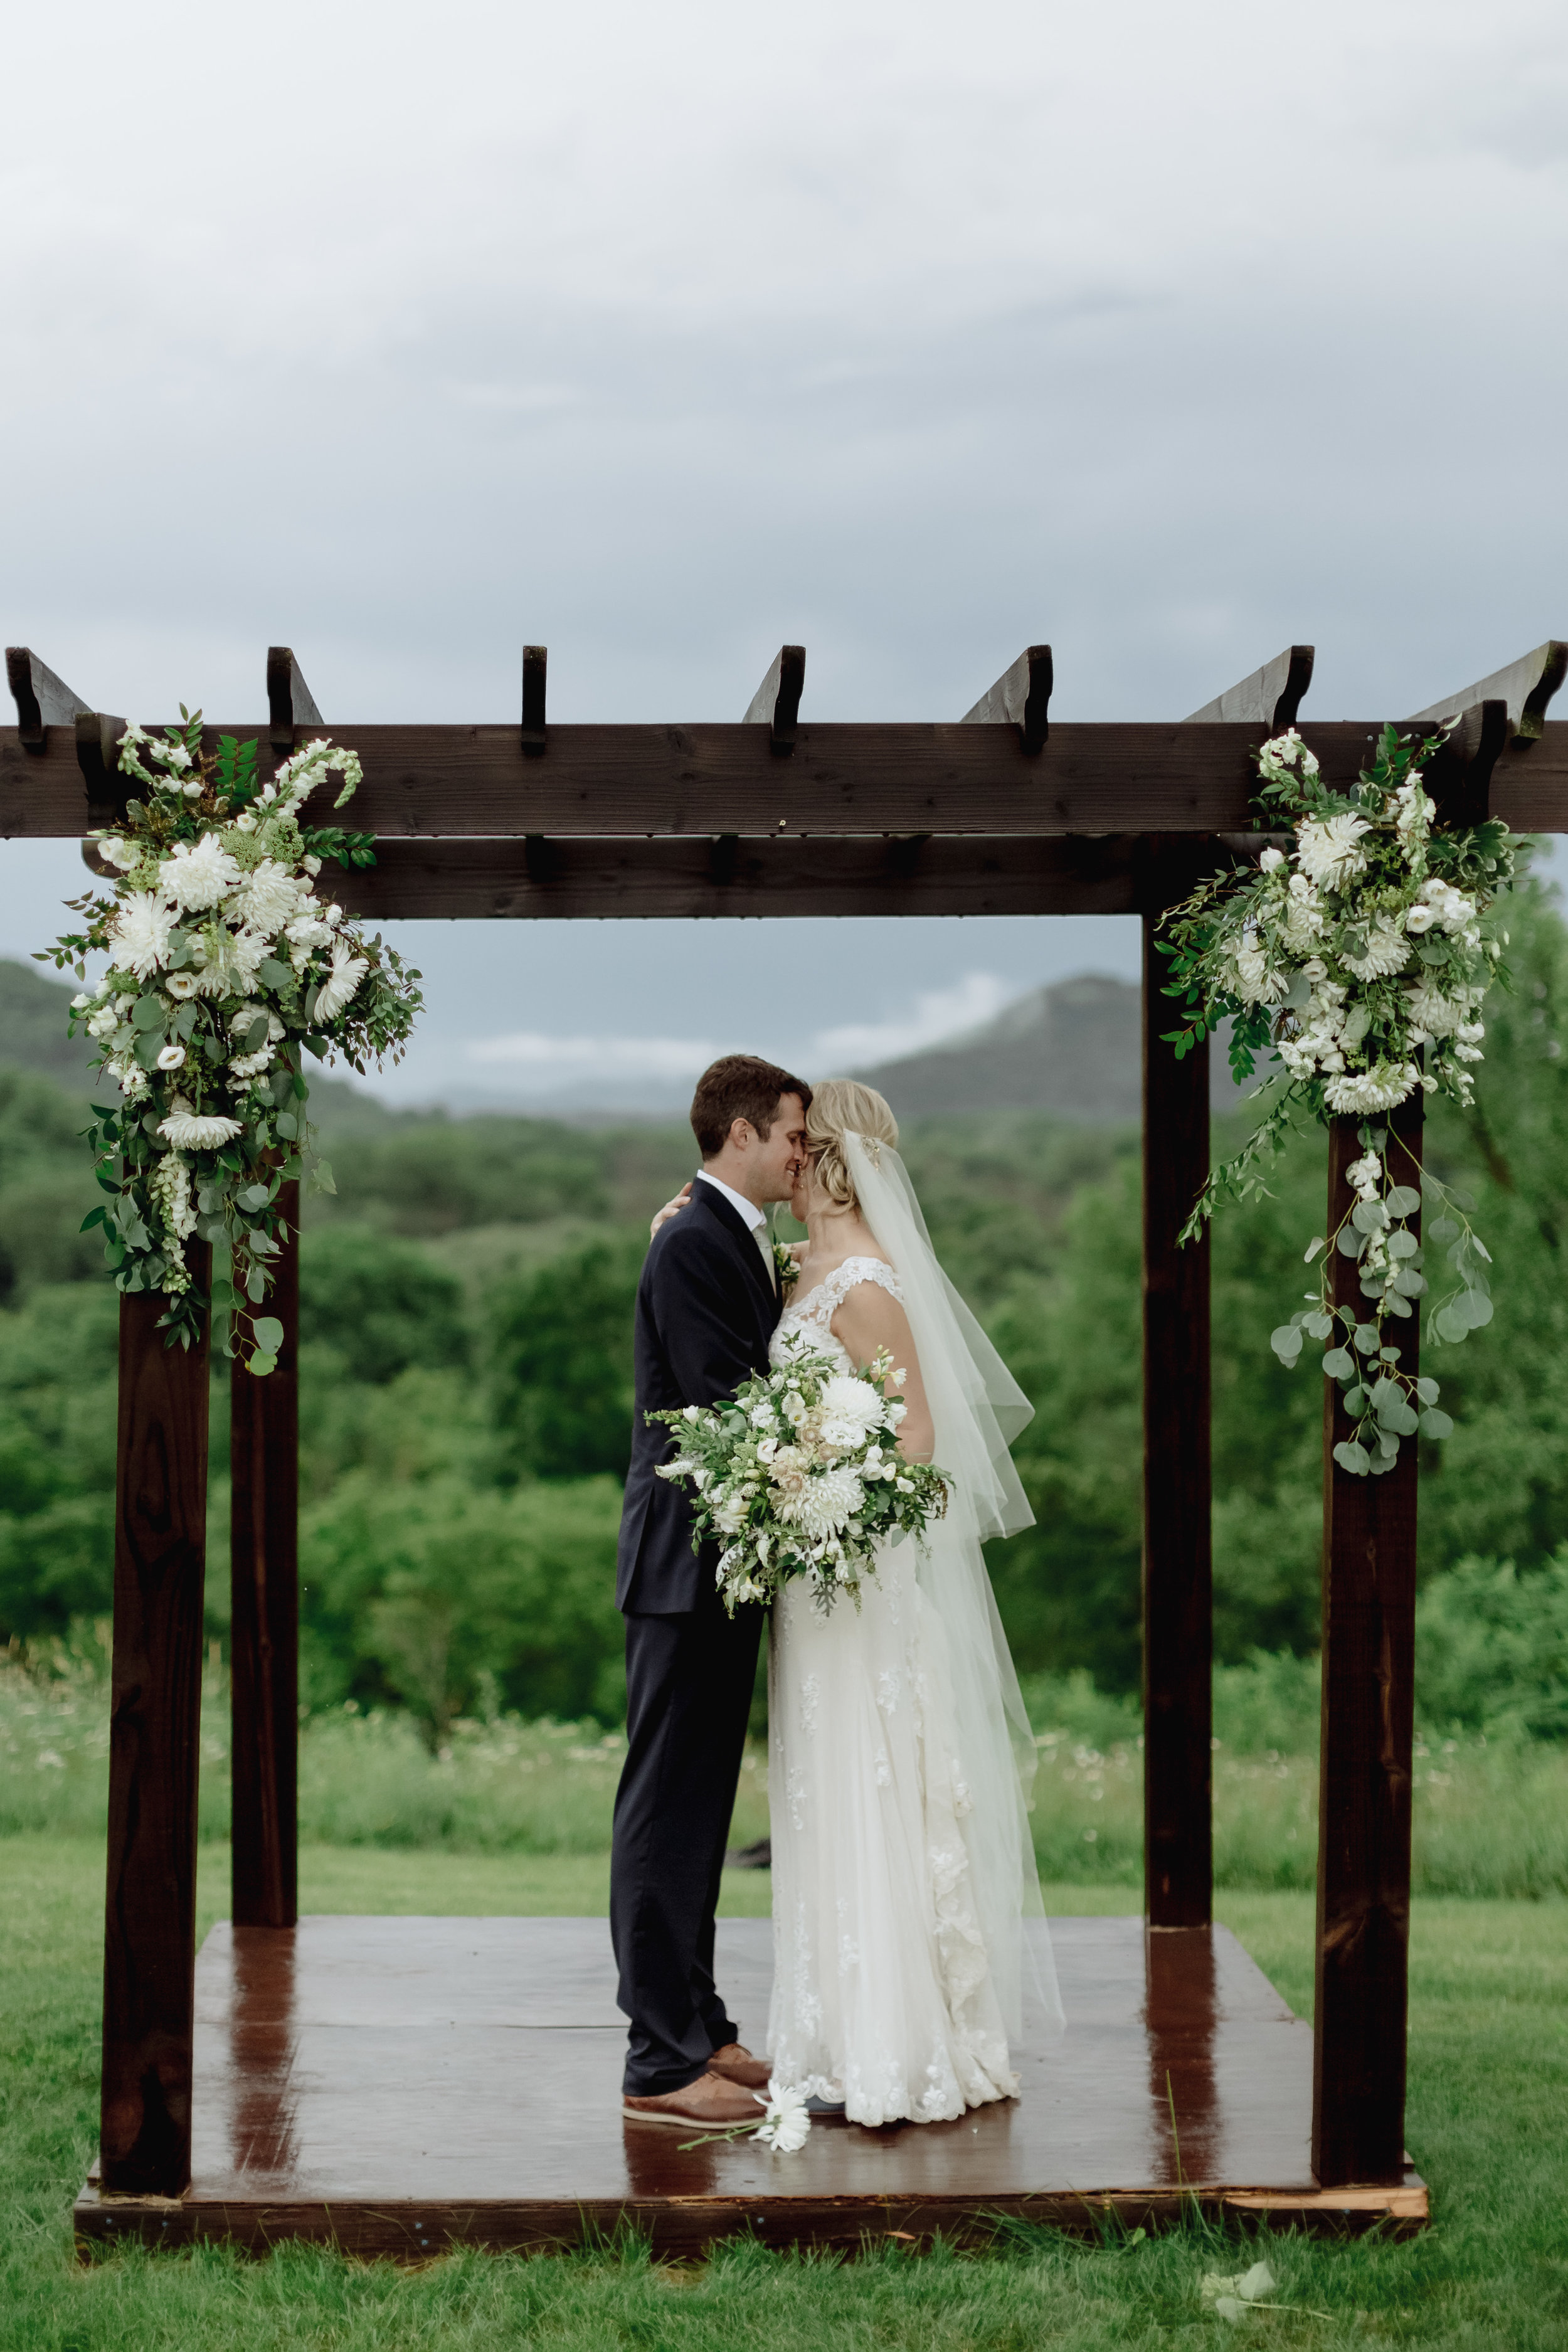 Thankfully the storms subsided post-ceremony long enough for them to get some beautiful hilltop photos (those poor arch flowers took a beating in the rain!).